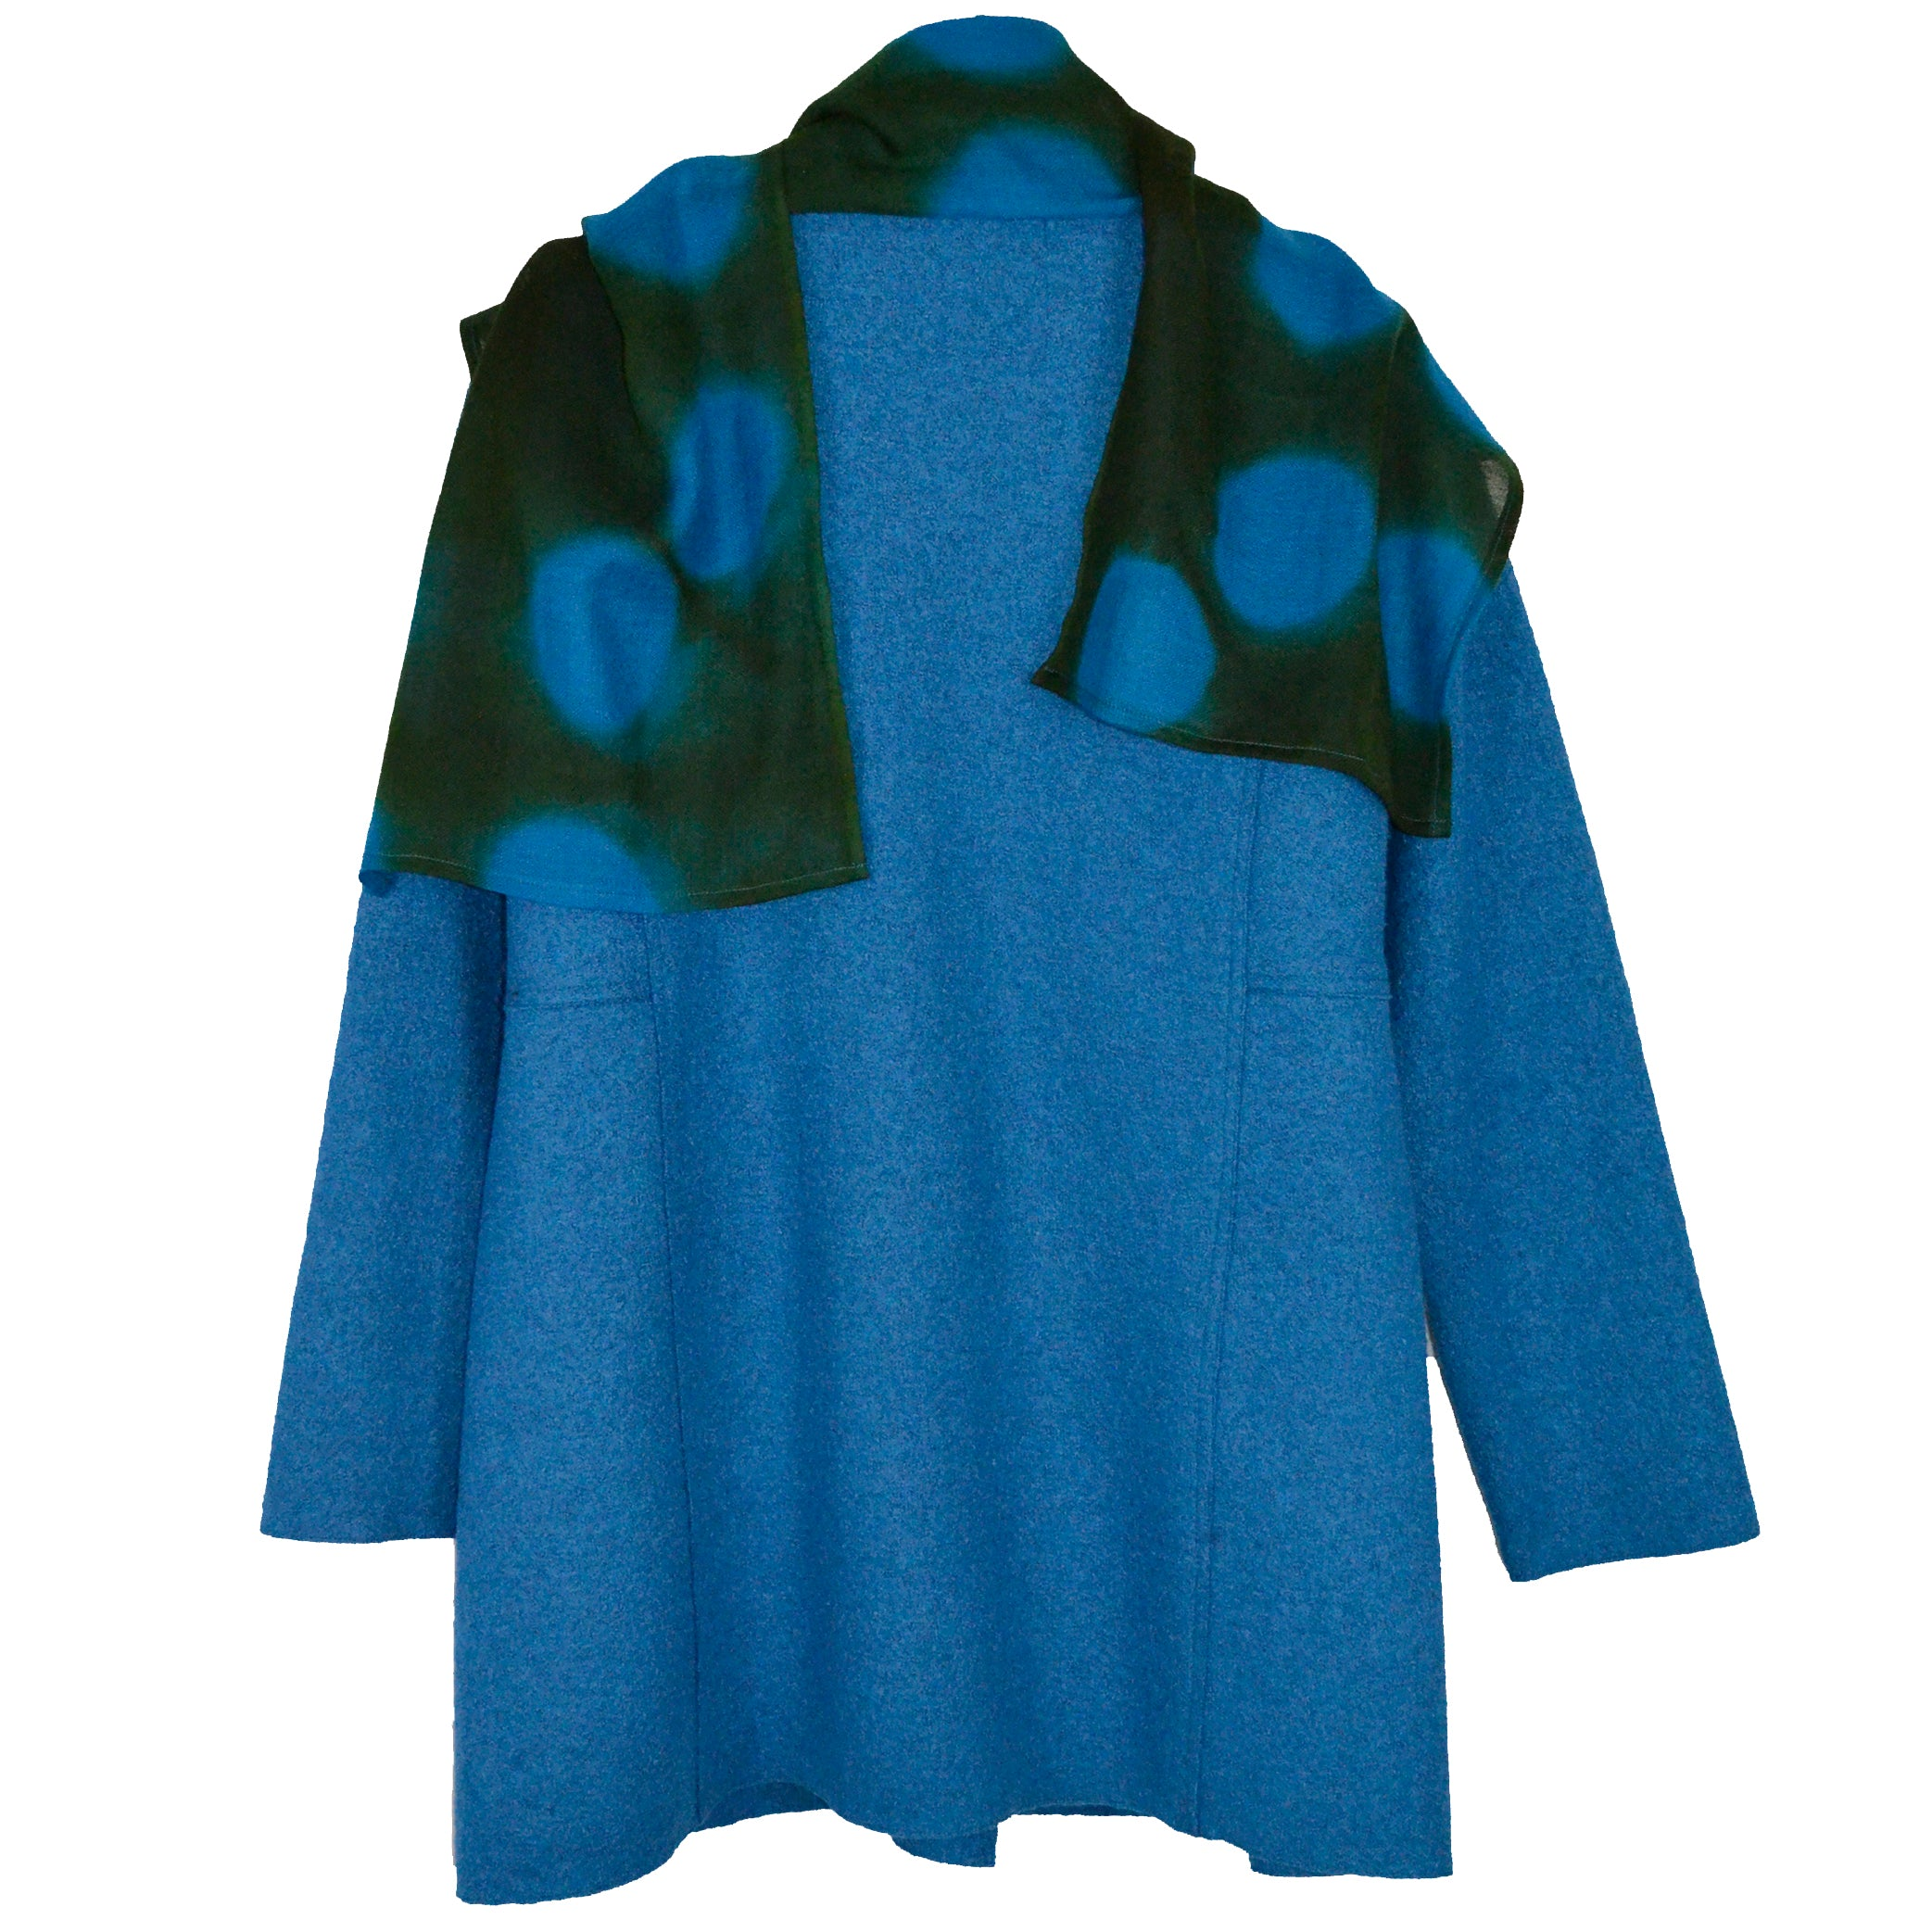 Nan Leaman Jacket, Long, Blue with Removable Shibori Dot Scarf, M